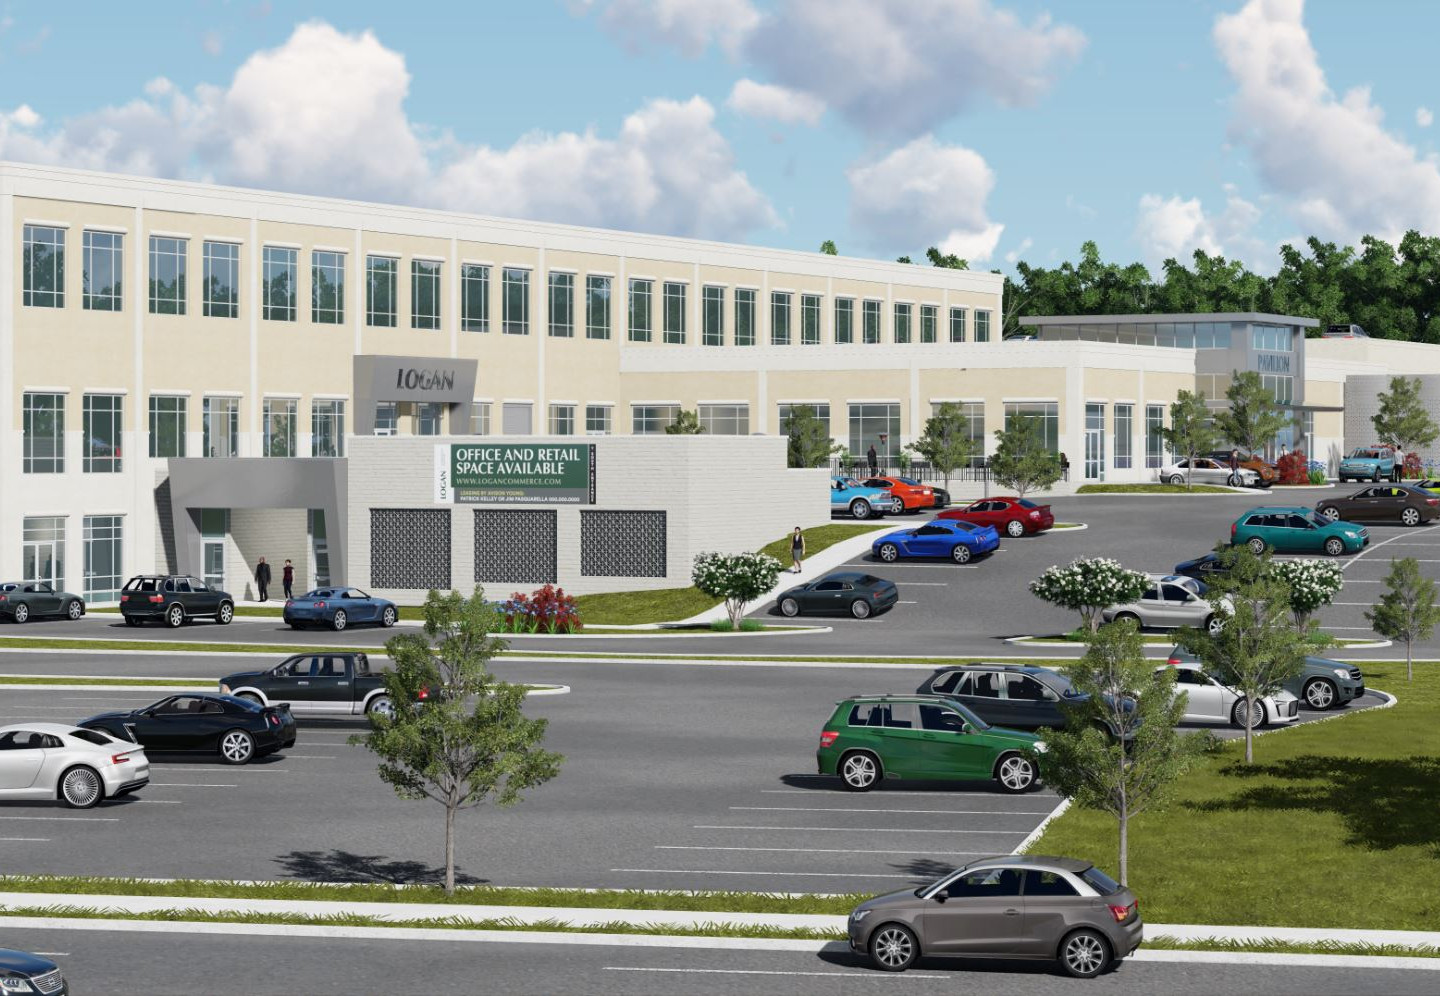 Logan is located located just one mile from the Norristown Trans. Center SEPTA Station (Bus & Rail)